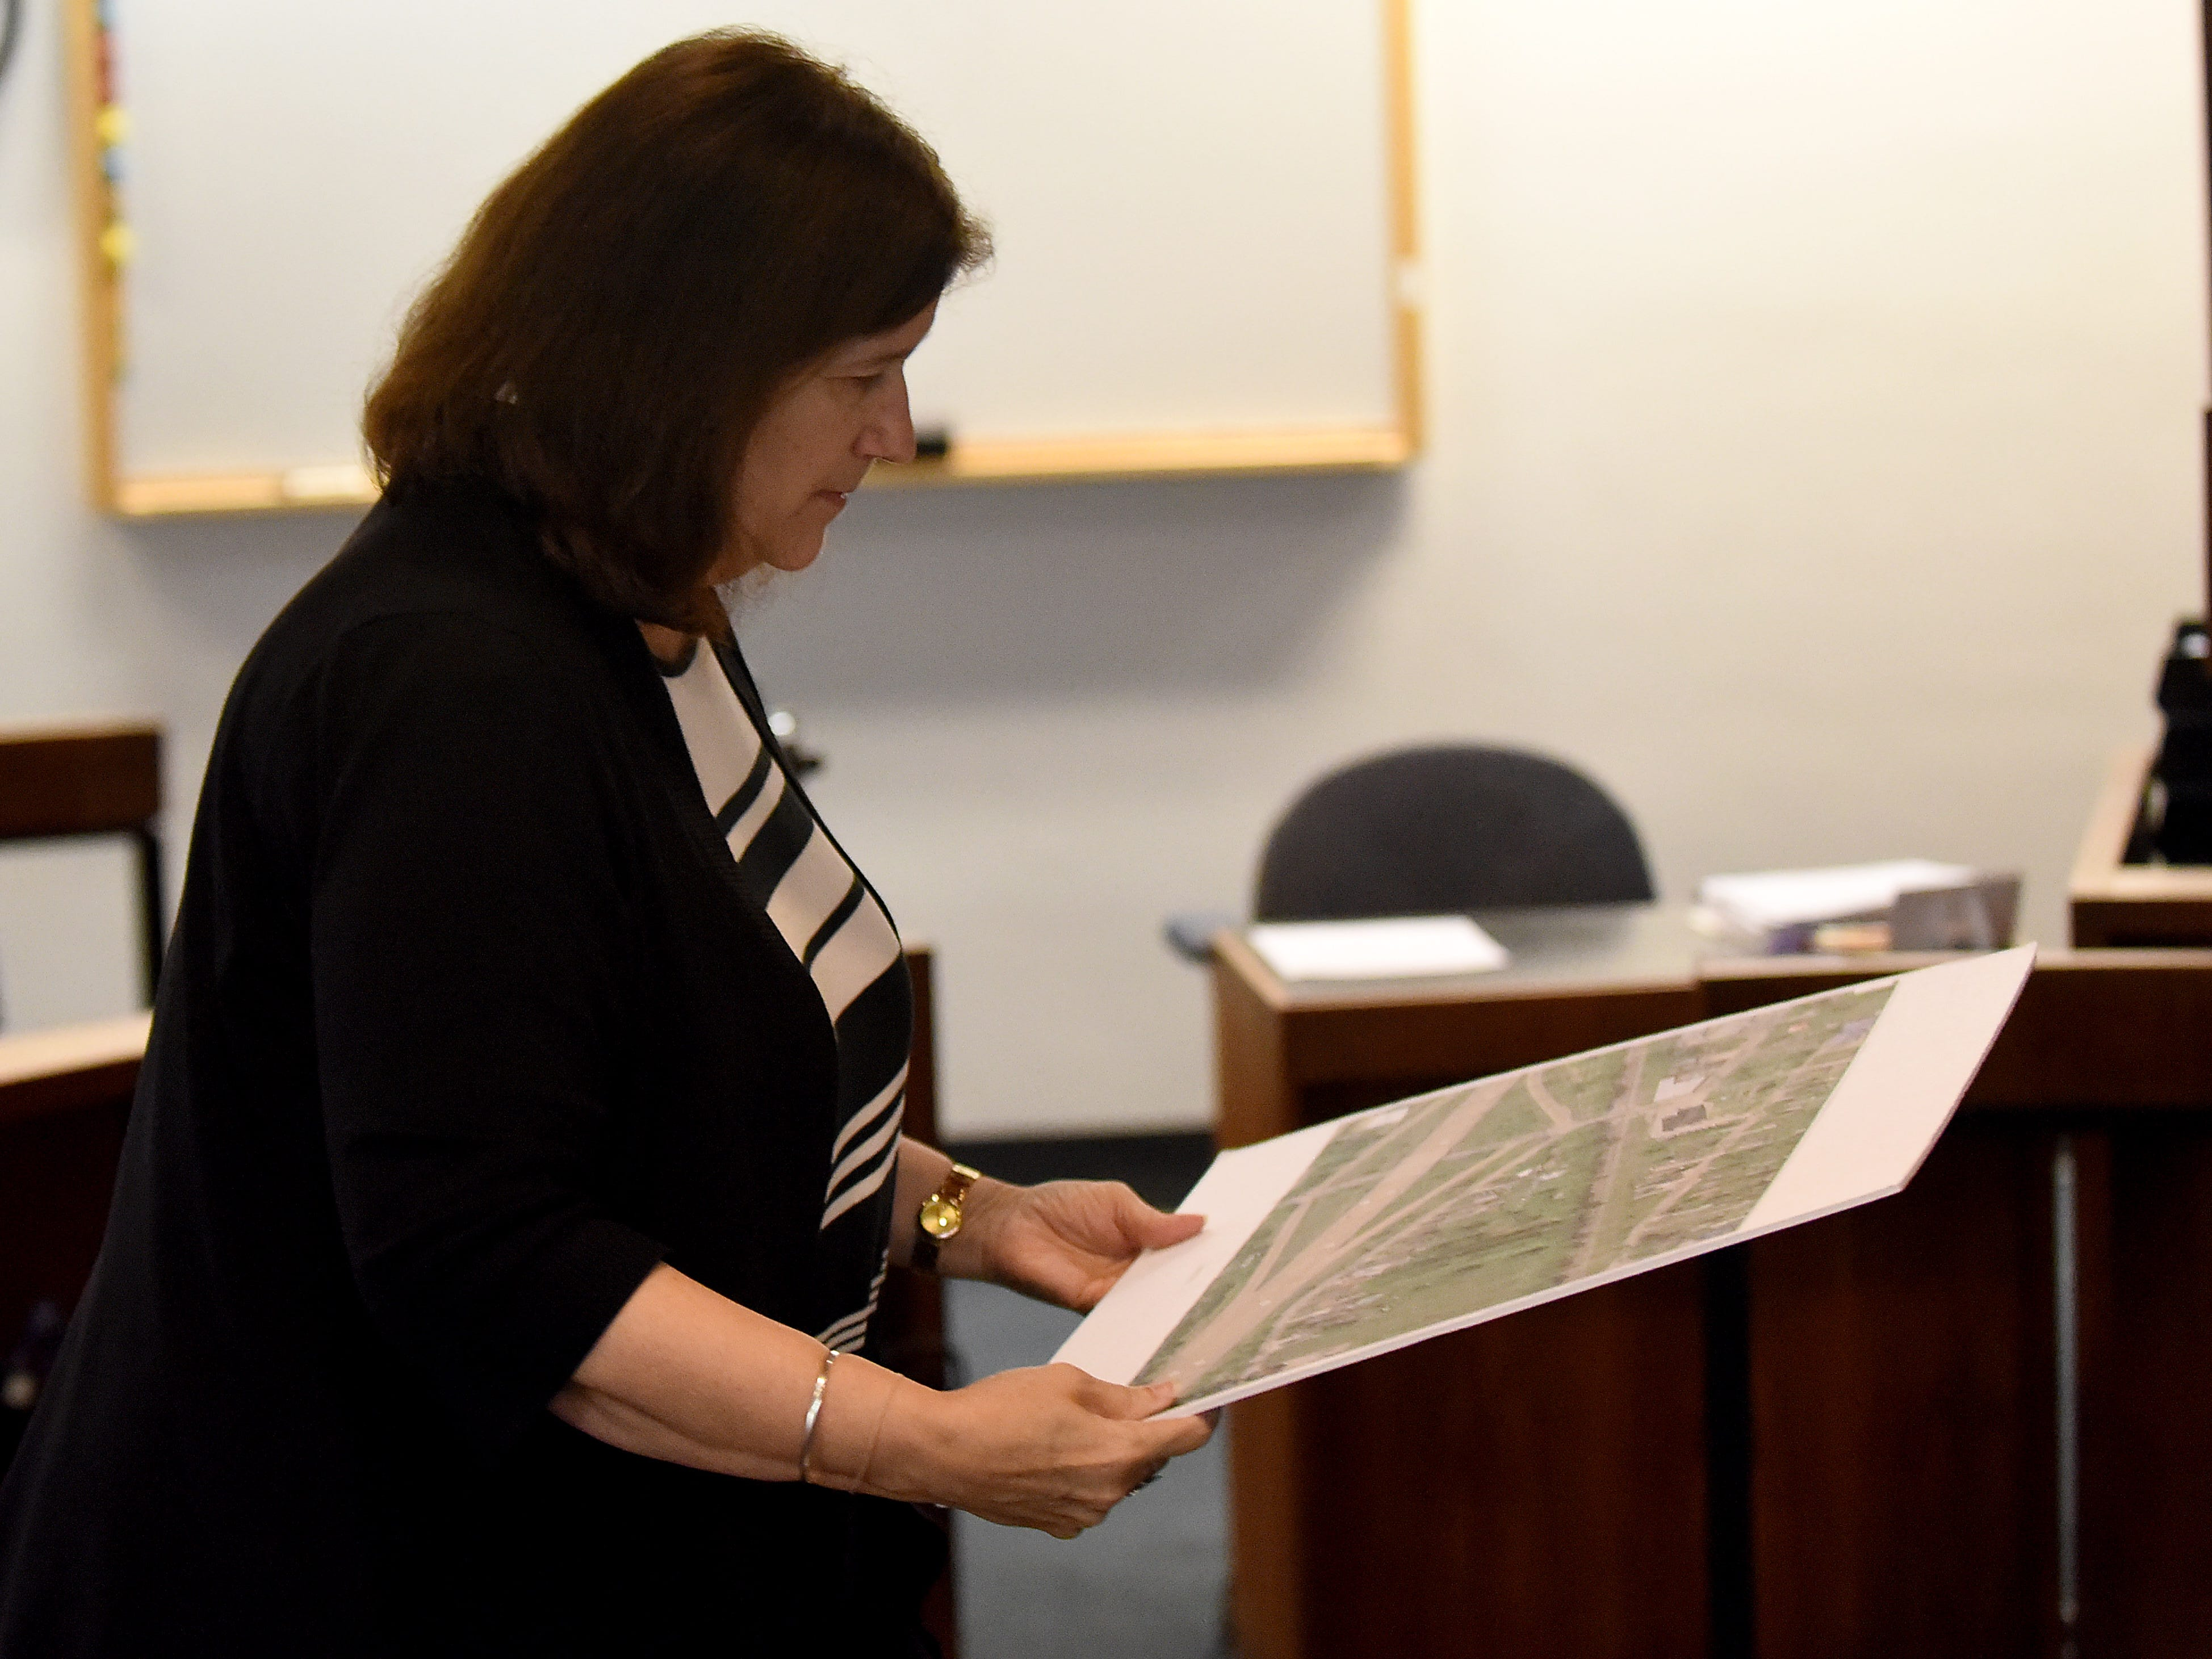 Defense attorney Kristin Burkett with a map of the area during Newark Police Chief Barry ConnellÕs trial for a traffic citation alleging he passed a stopped school bus in October.